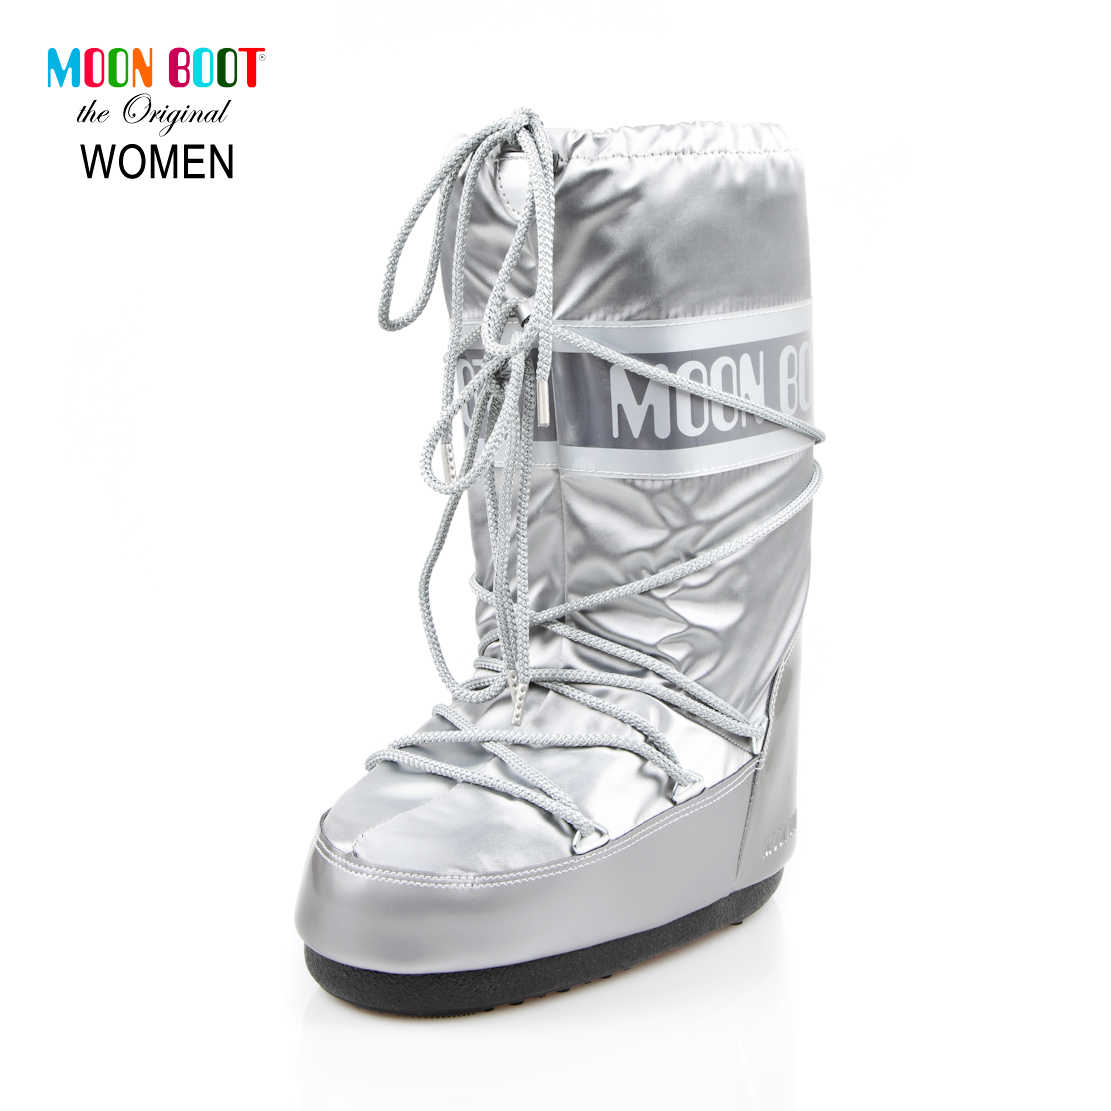 Moon Boot Silver Women'S Snow Boots 14016800-002 Glance Sılver classic after-ski boots